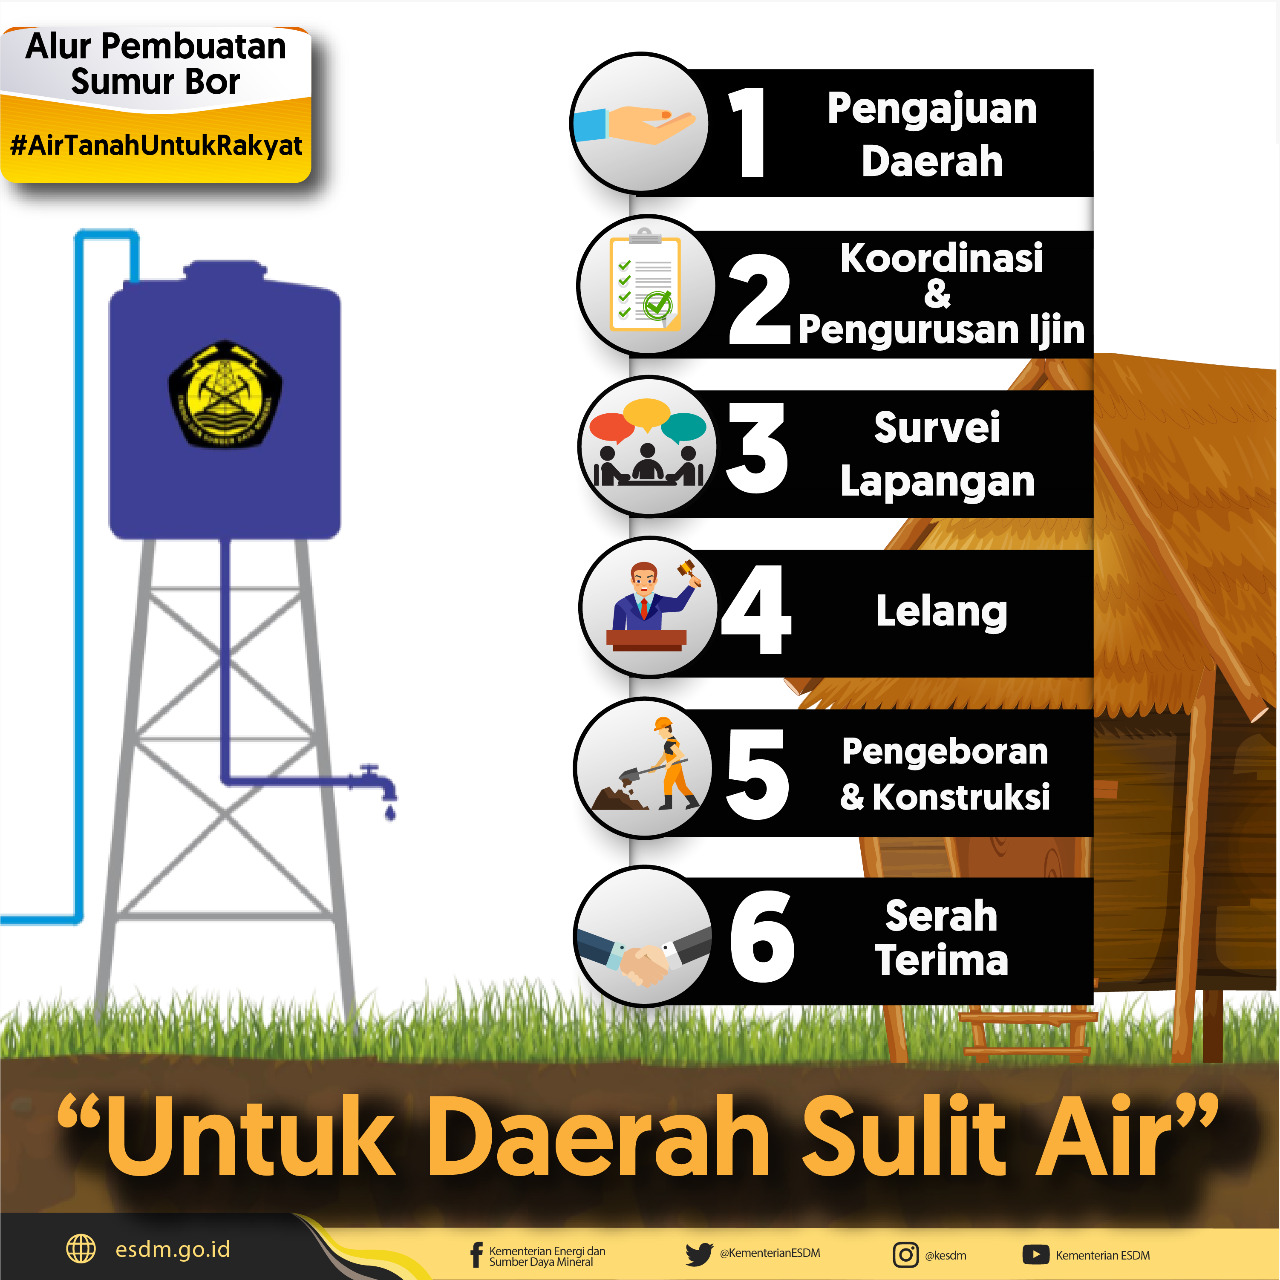 Daerah Tertinggal Sulit Air